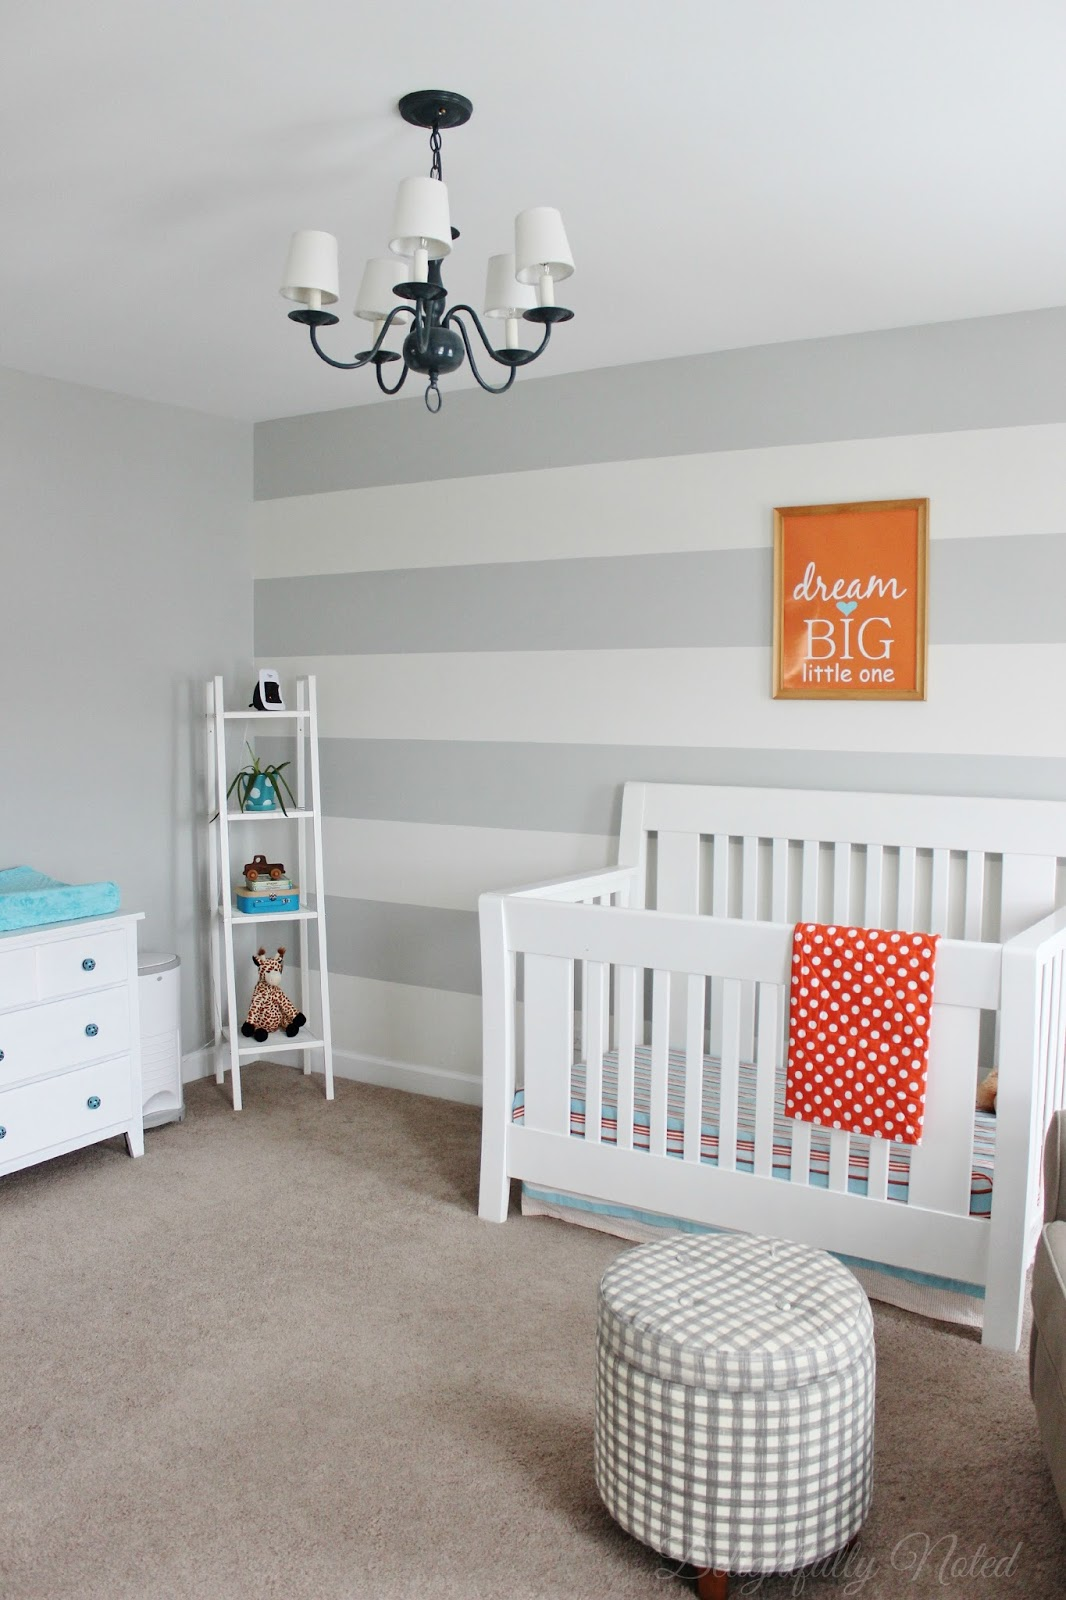 Delightfully Noted Home Tour - Modern Fresh Farmhouse Decorating Ideas - Little Boys Room Nursery